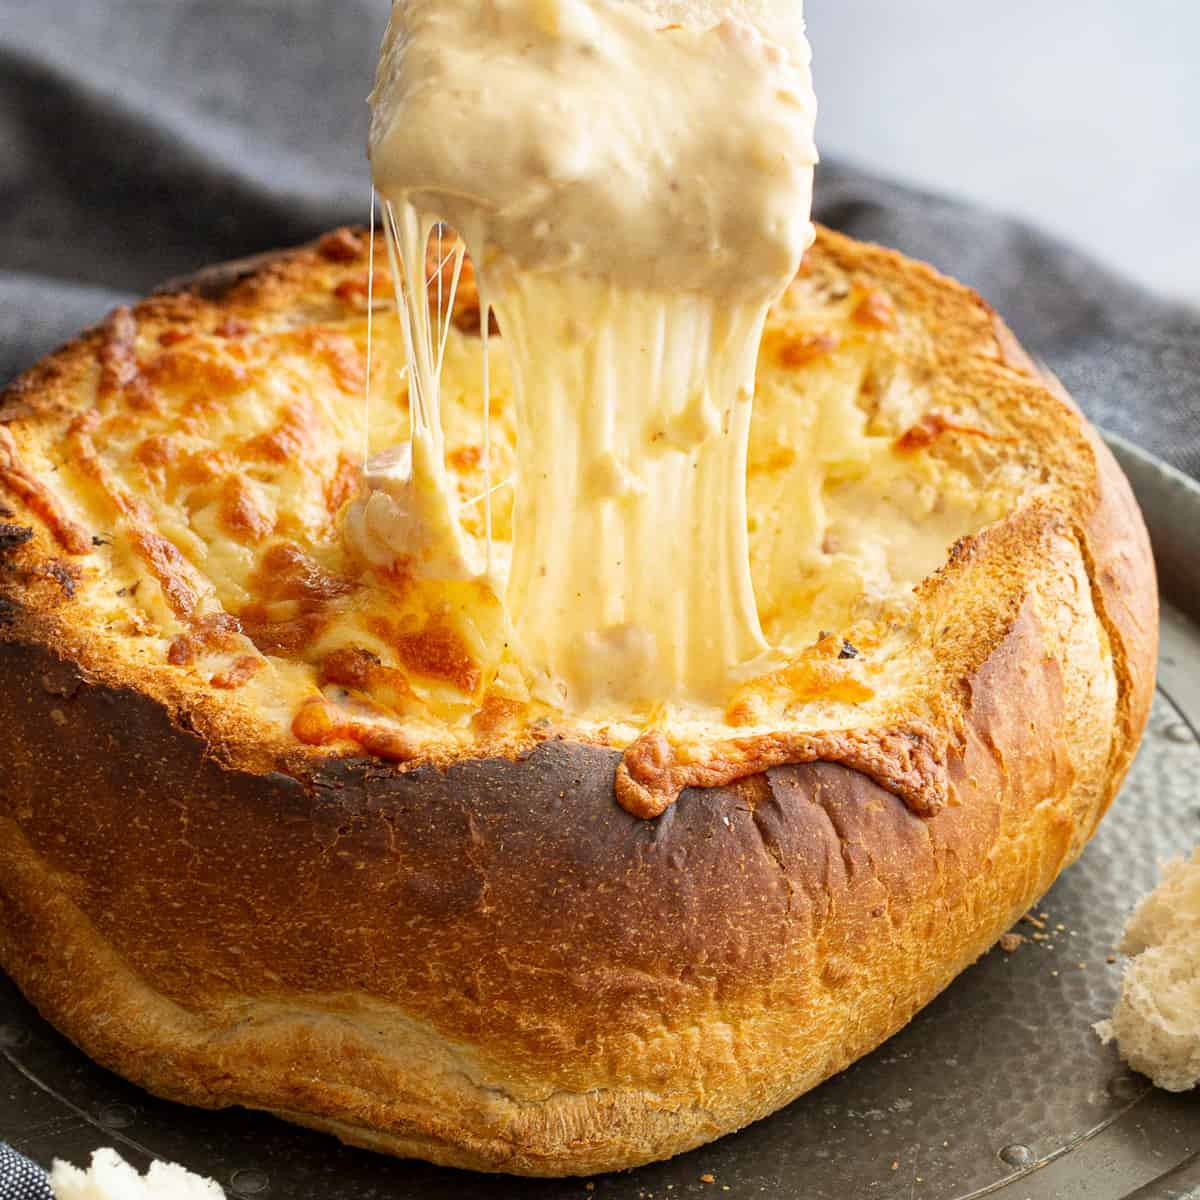 Bread pulling away from melted cheese in a cheese and bacon cob loaf.